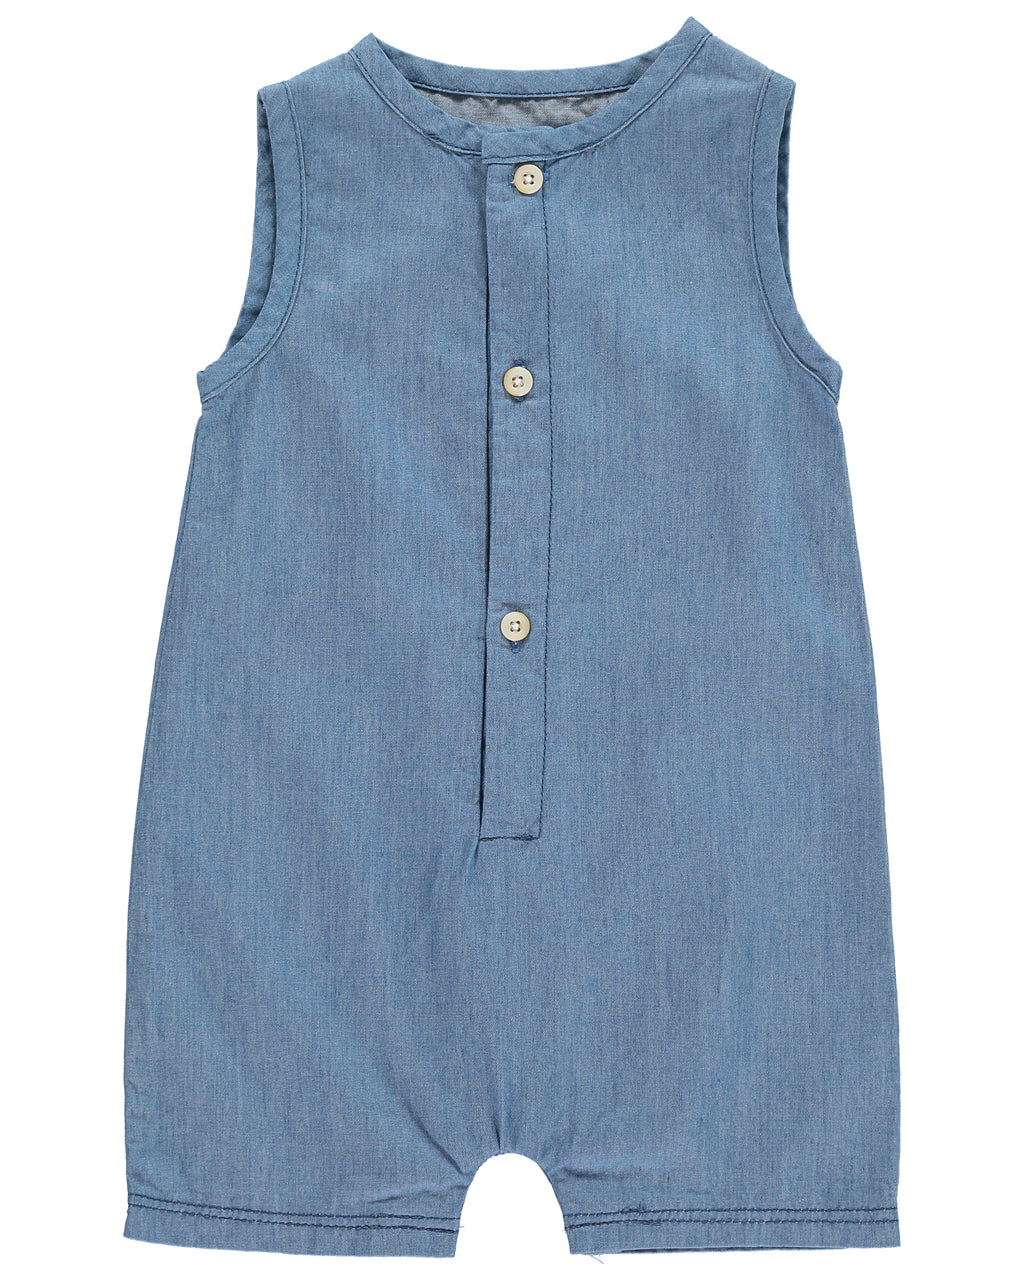 Chambray Woven Playsuit